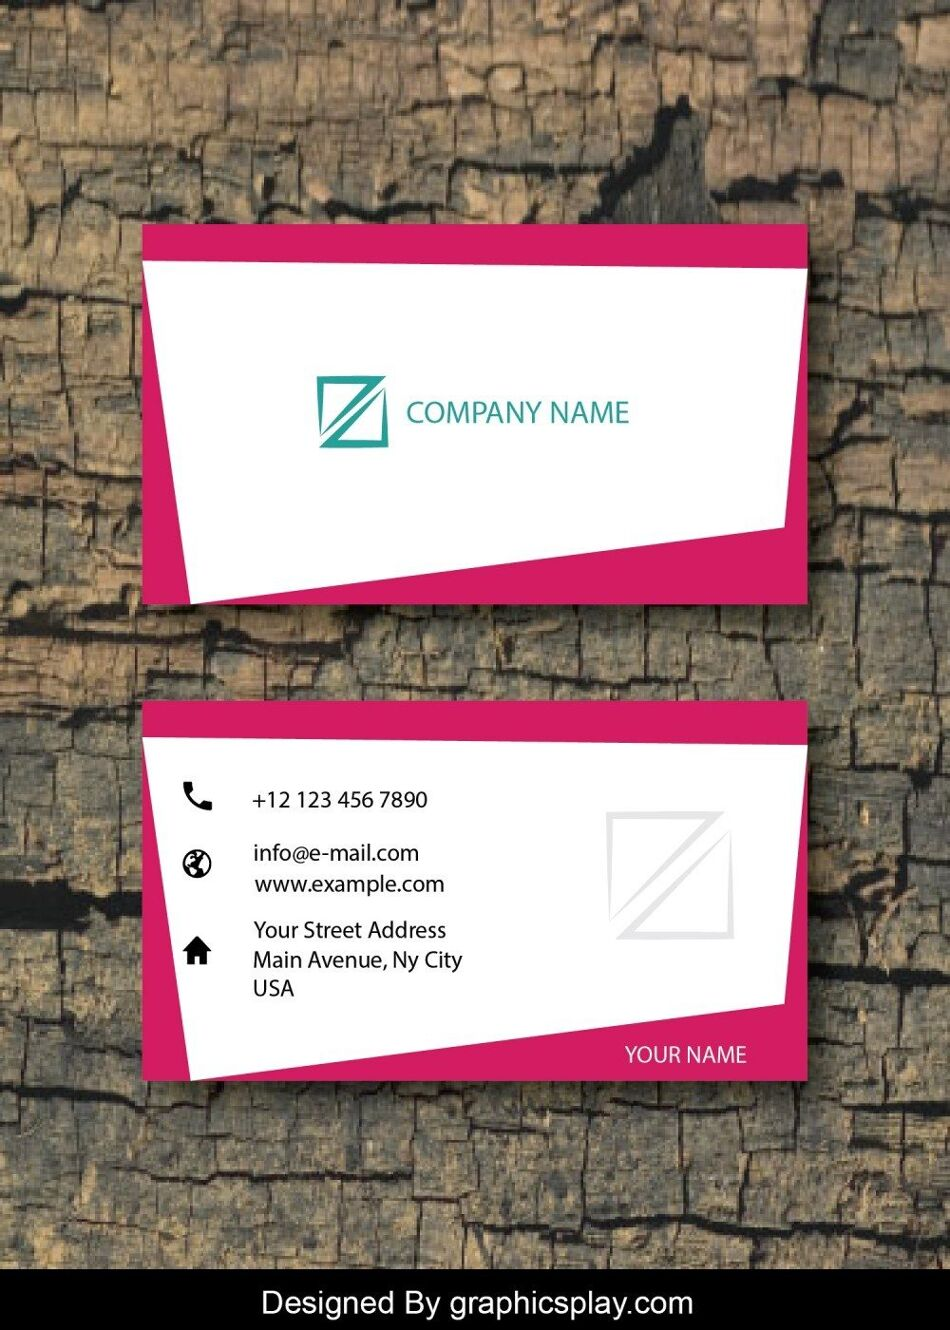 Business Card Design Vector Template - ID 1715 1